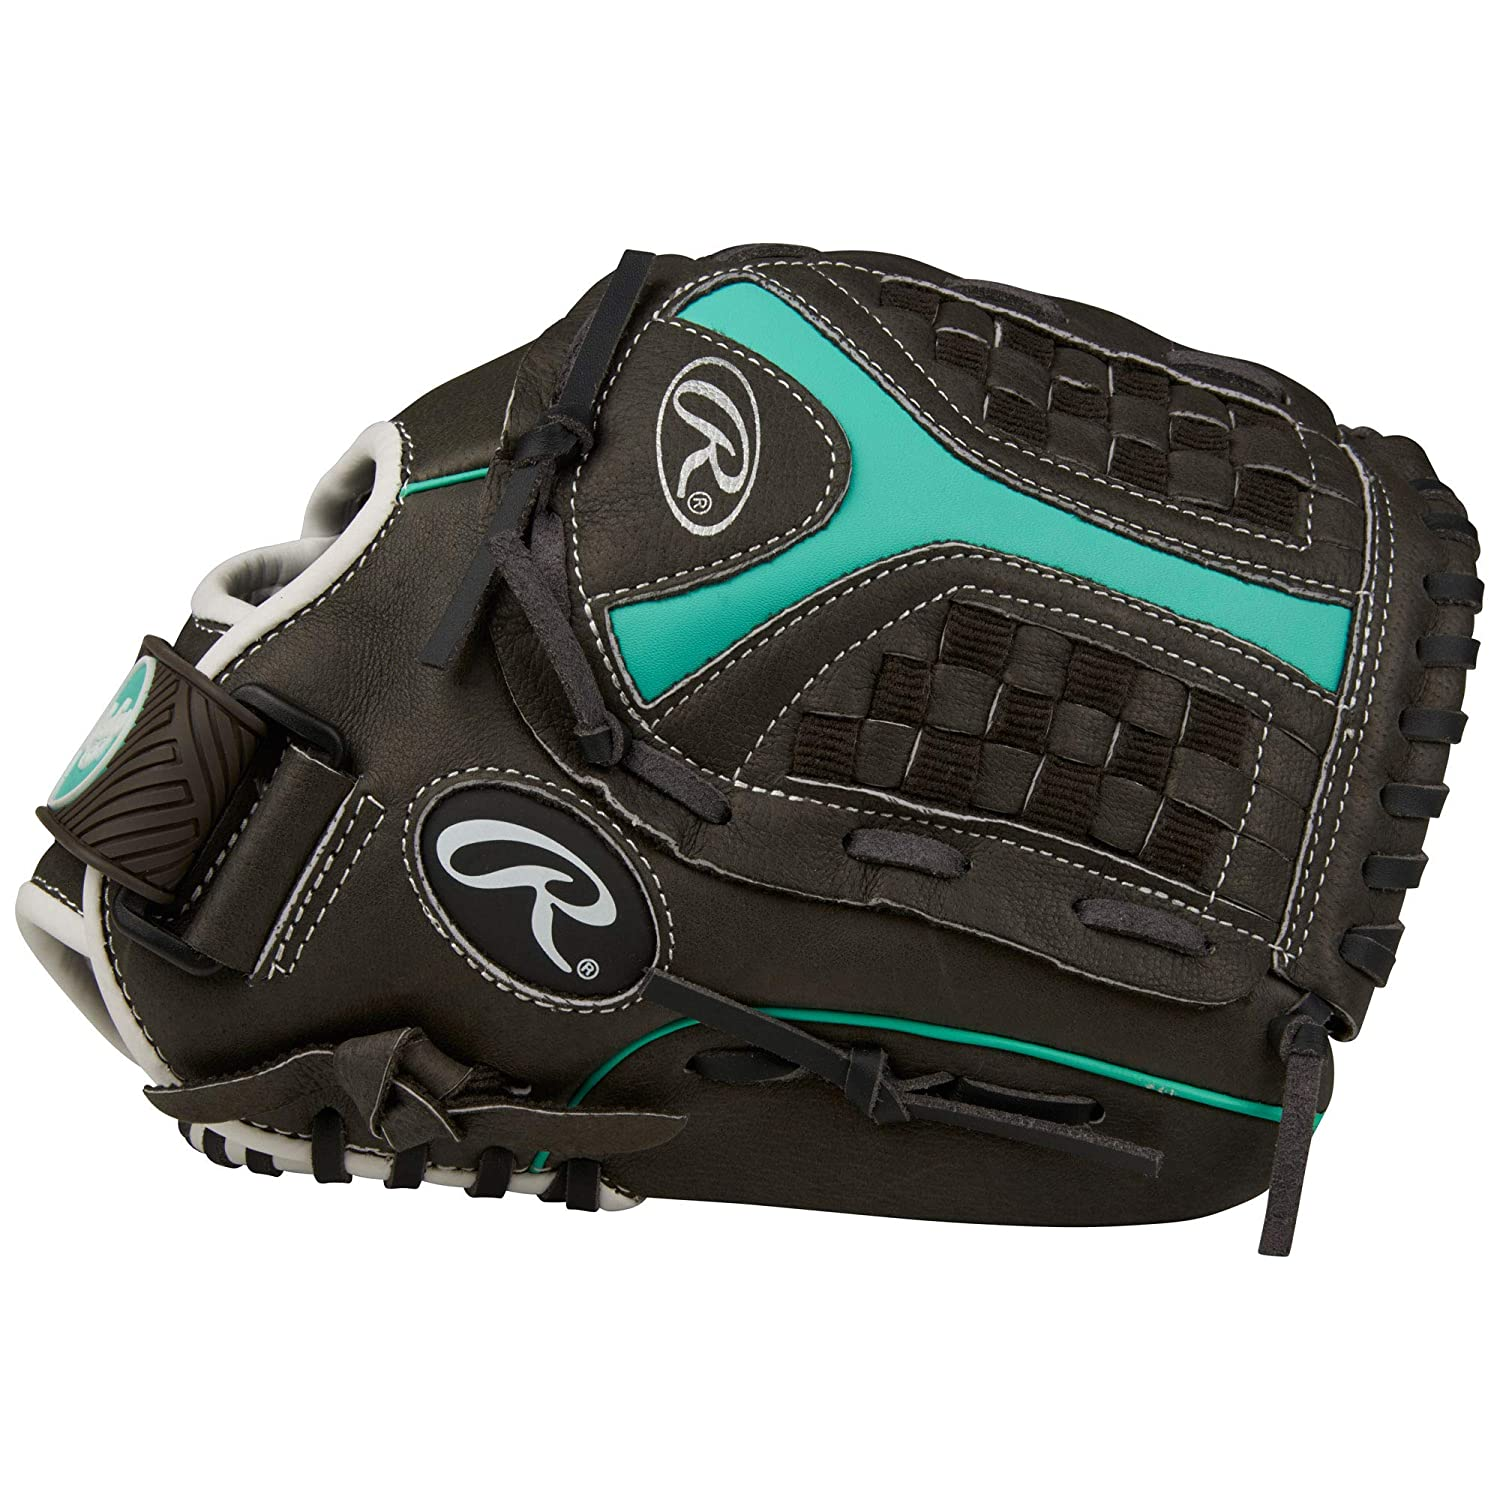 Rawlings Storm Series 11.5 Inch ST1150FPM Fastpitch Softball Glove